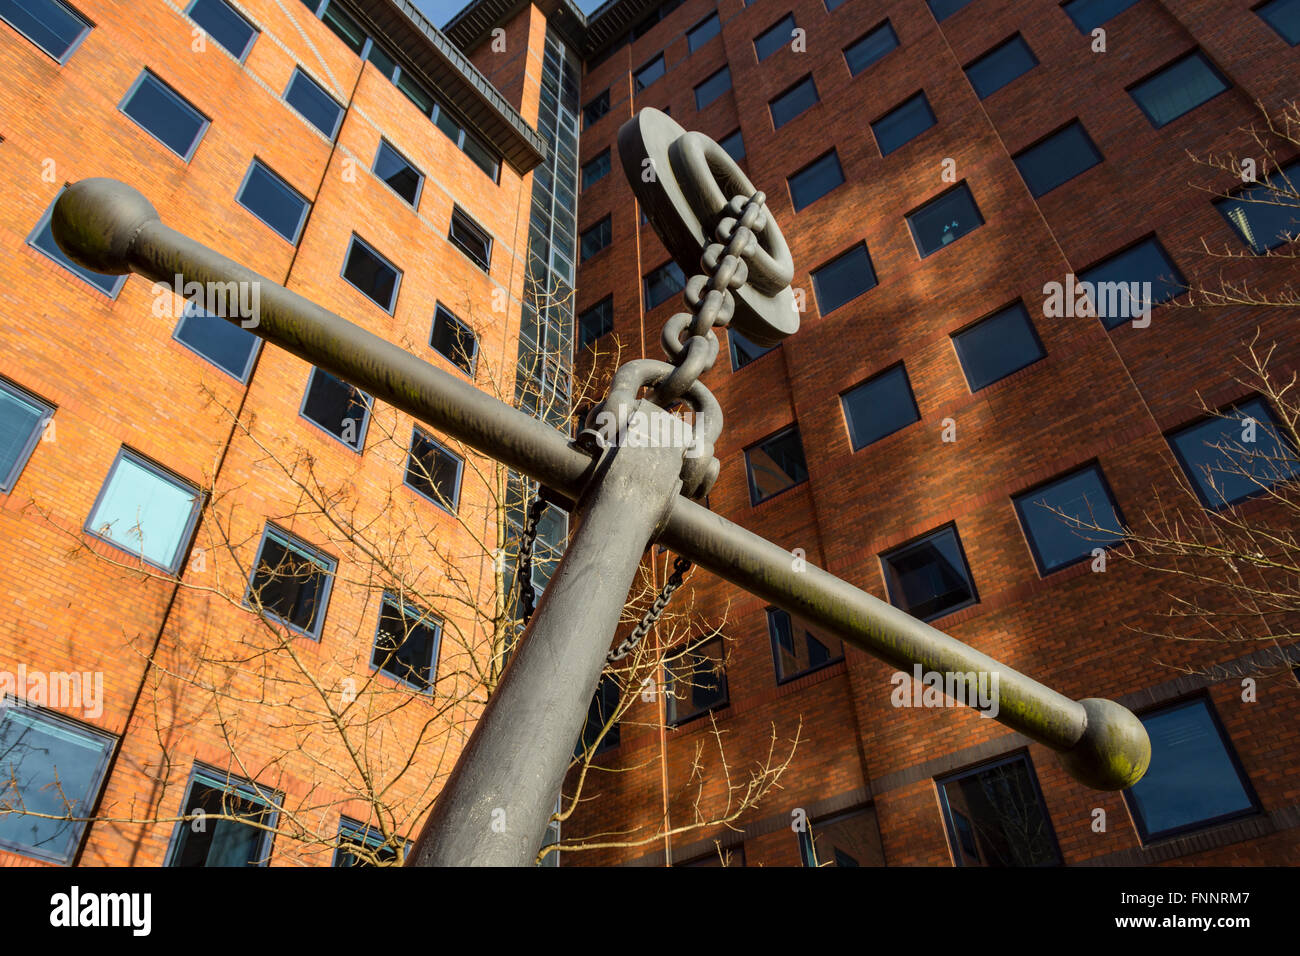 'Anchorage' by Wendy Taylor CBE.  Anchor sculpture at 'The Anchorage' office block, Salford Quays, - Stock Image